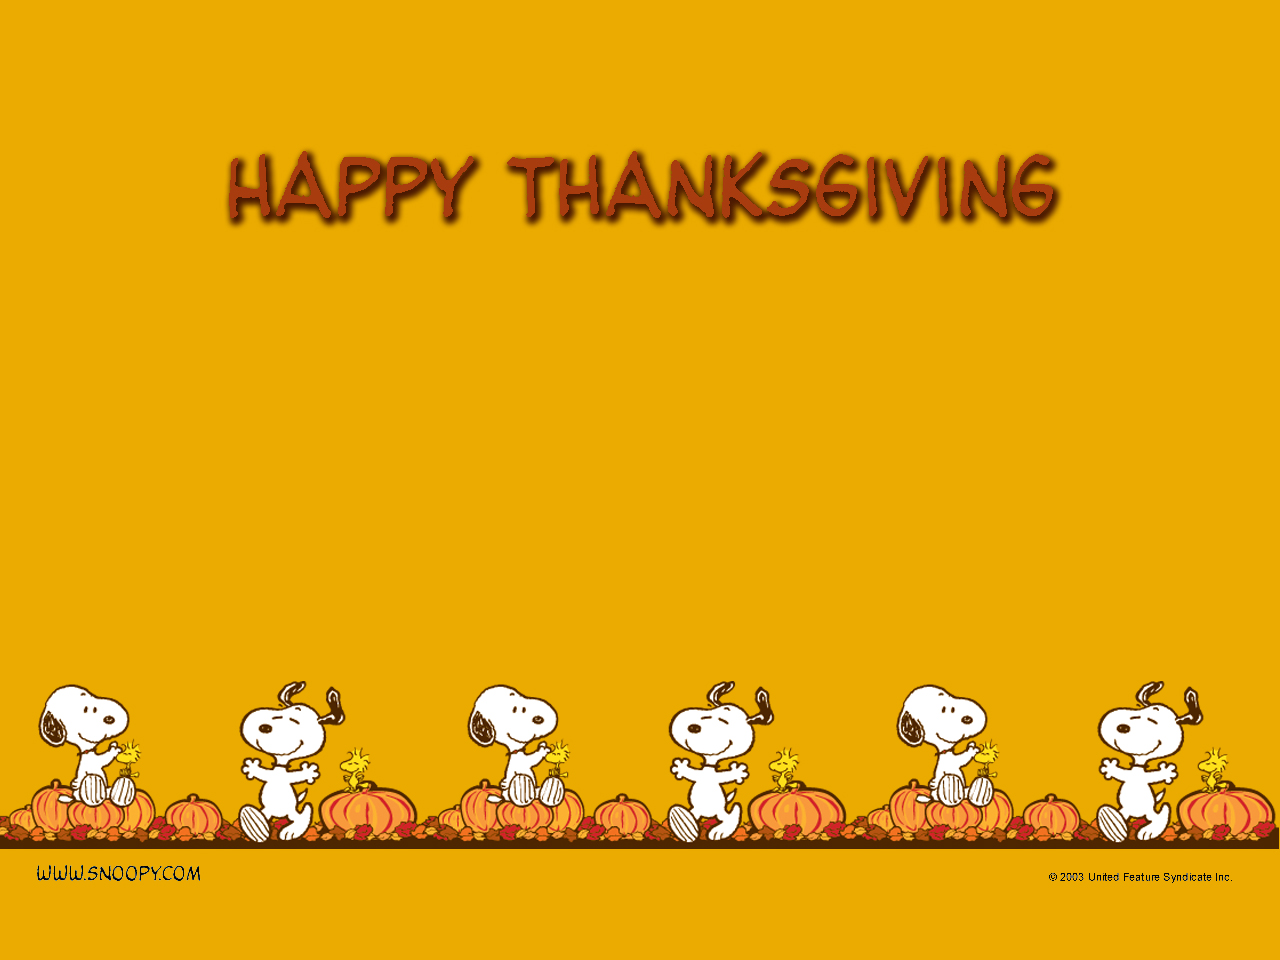 Peanuts images Thanksgiving HD